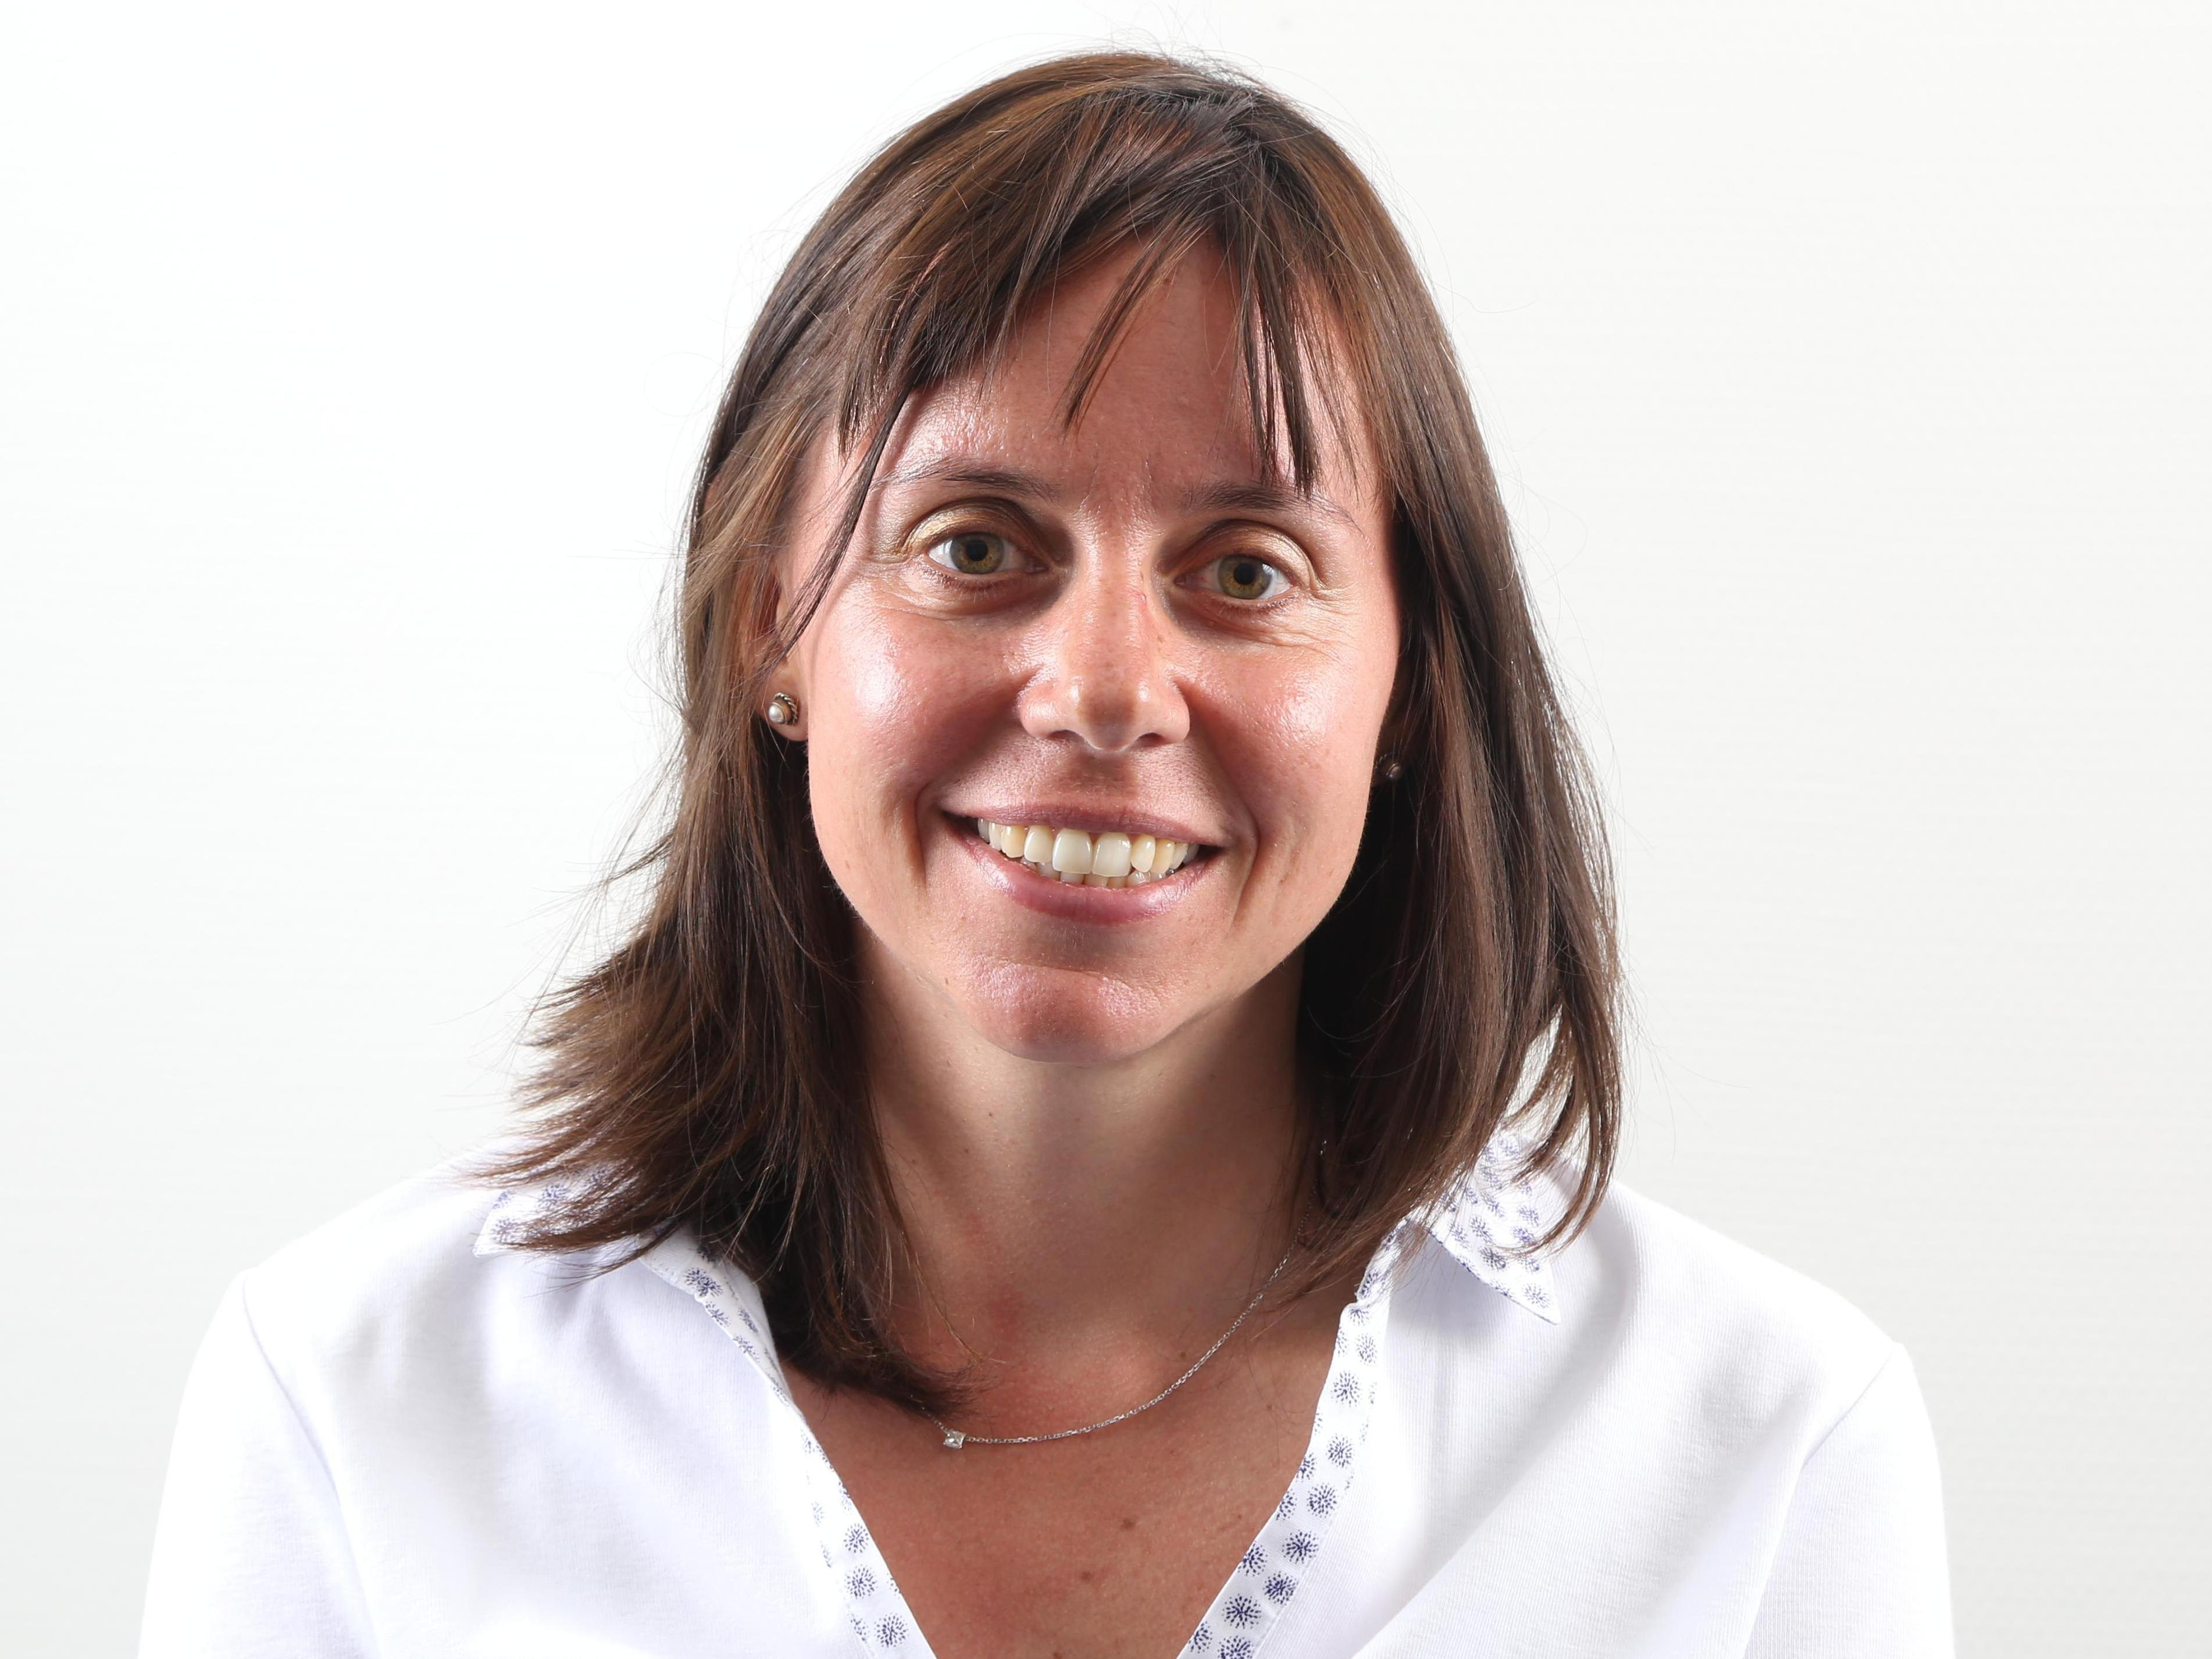 Prof. Annamaria Conti nominated expert for big data analysis at the European Commission